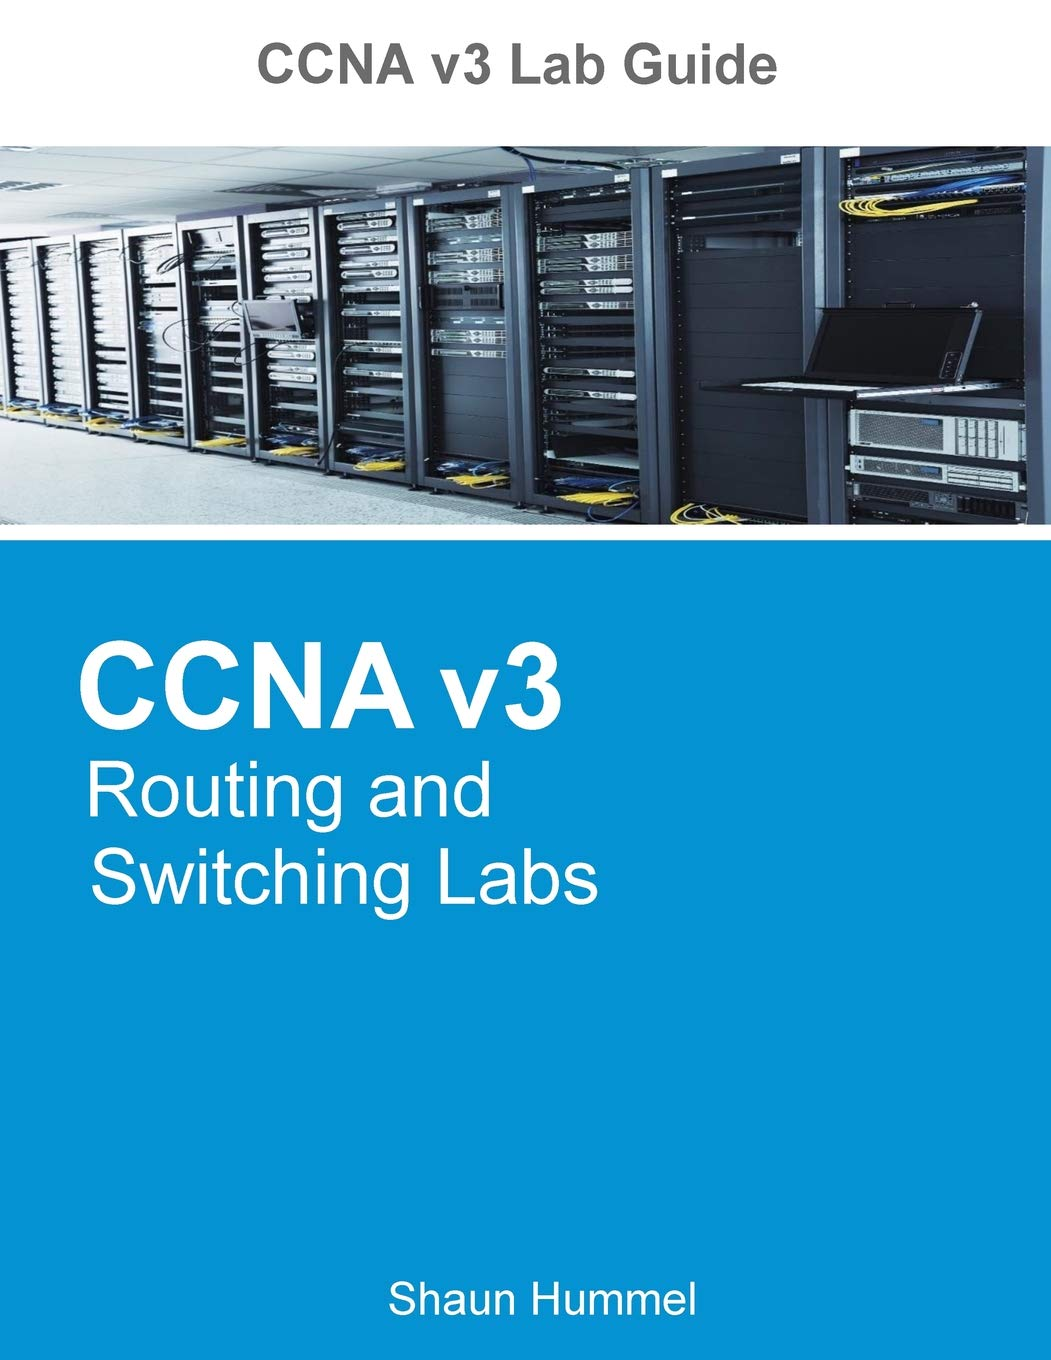 CCNA v3 Lab Guide: Routing and Switching Labs: Shaun Hummel: 9781544104683:  Amazon.com: Books